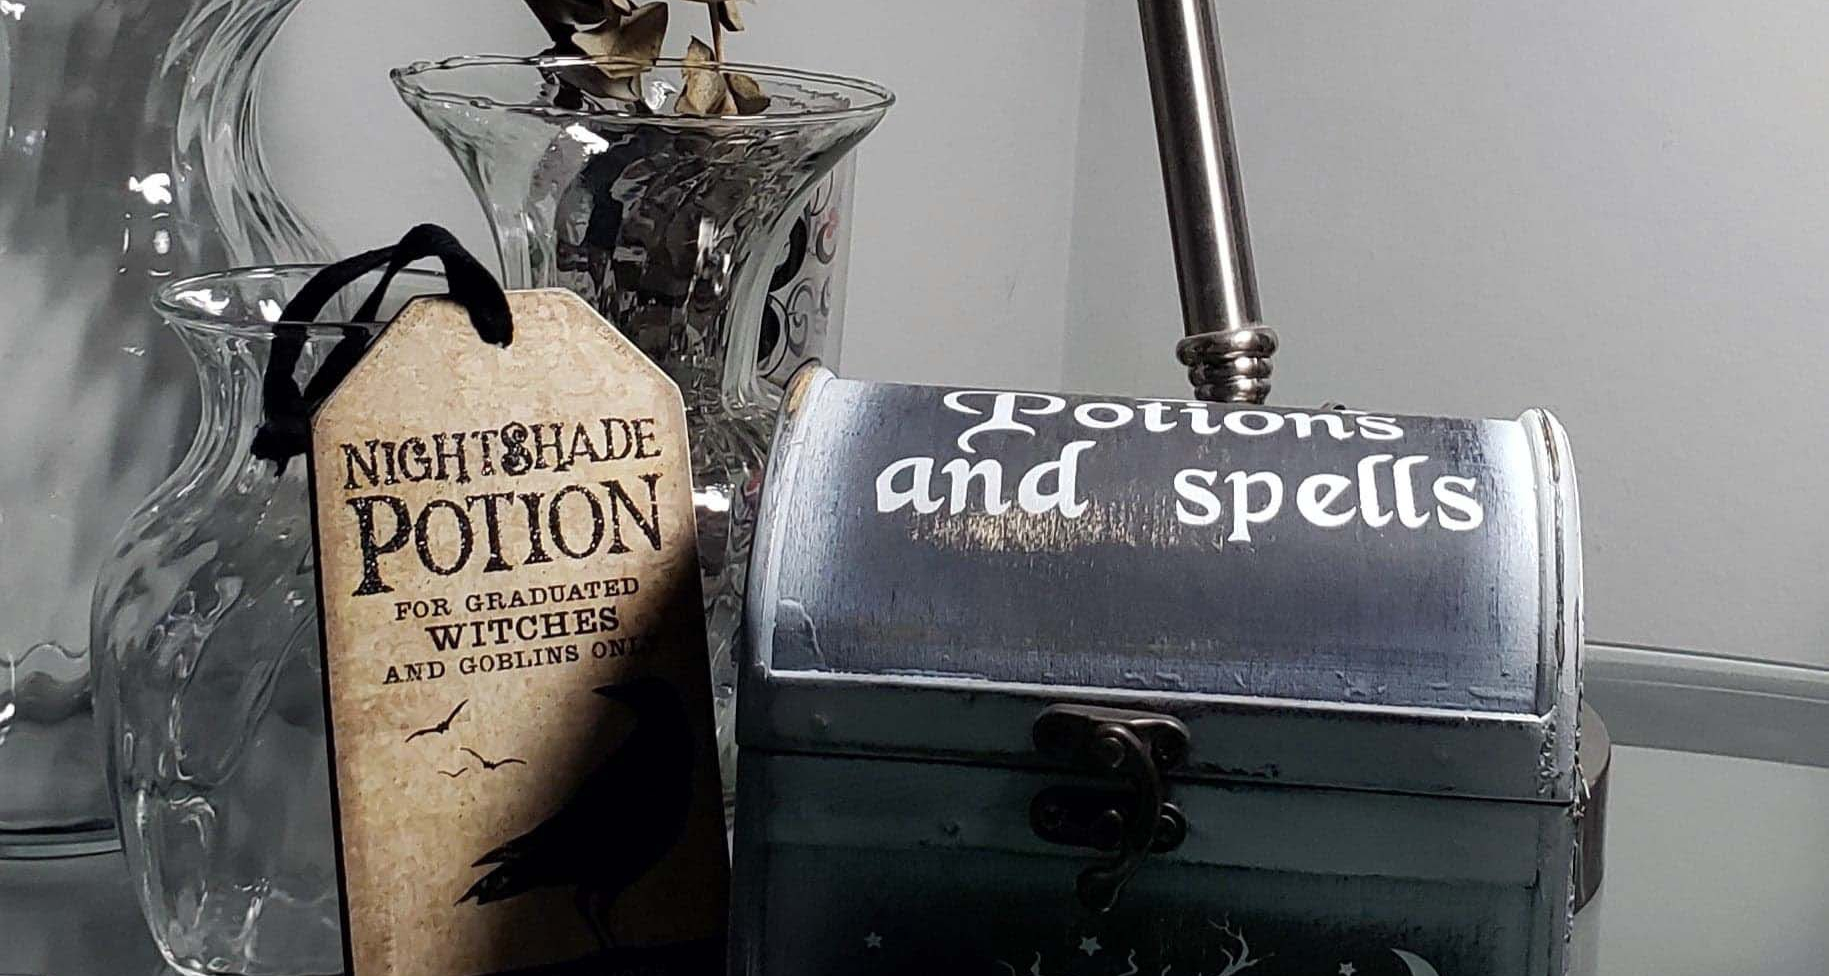 """Wellness corner of my desk - three glass vases of different sizes, one with dried eucalyptus in it, a wooden box that says """"Potions and Spells"""", and a tag saying """"Nightshade potion For graduated Witches and Goblins Only"""" with a picture of a bird on it."""